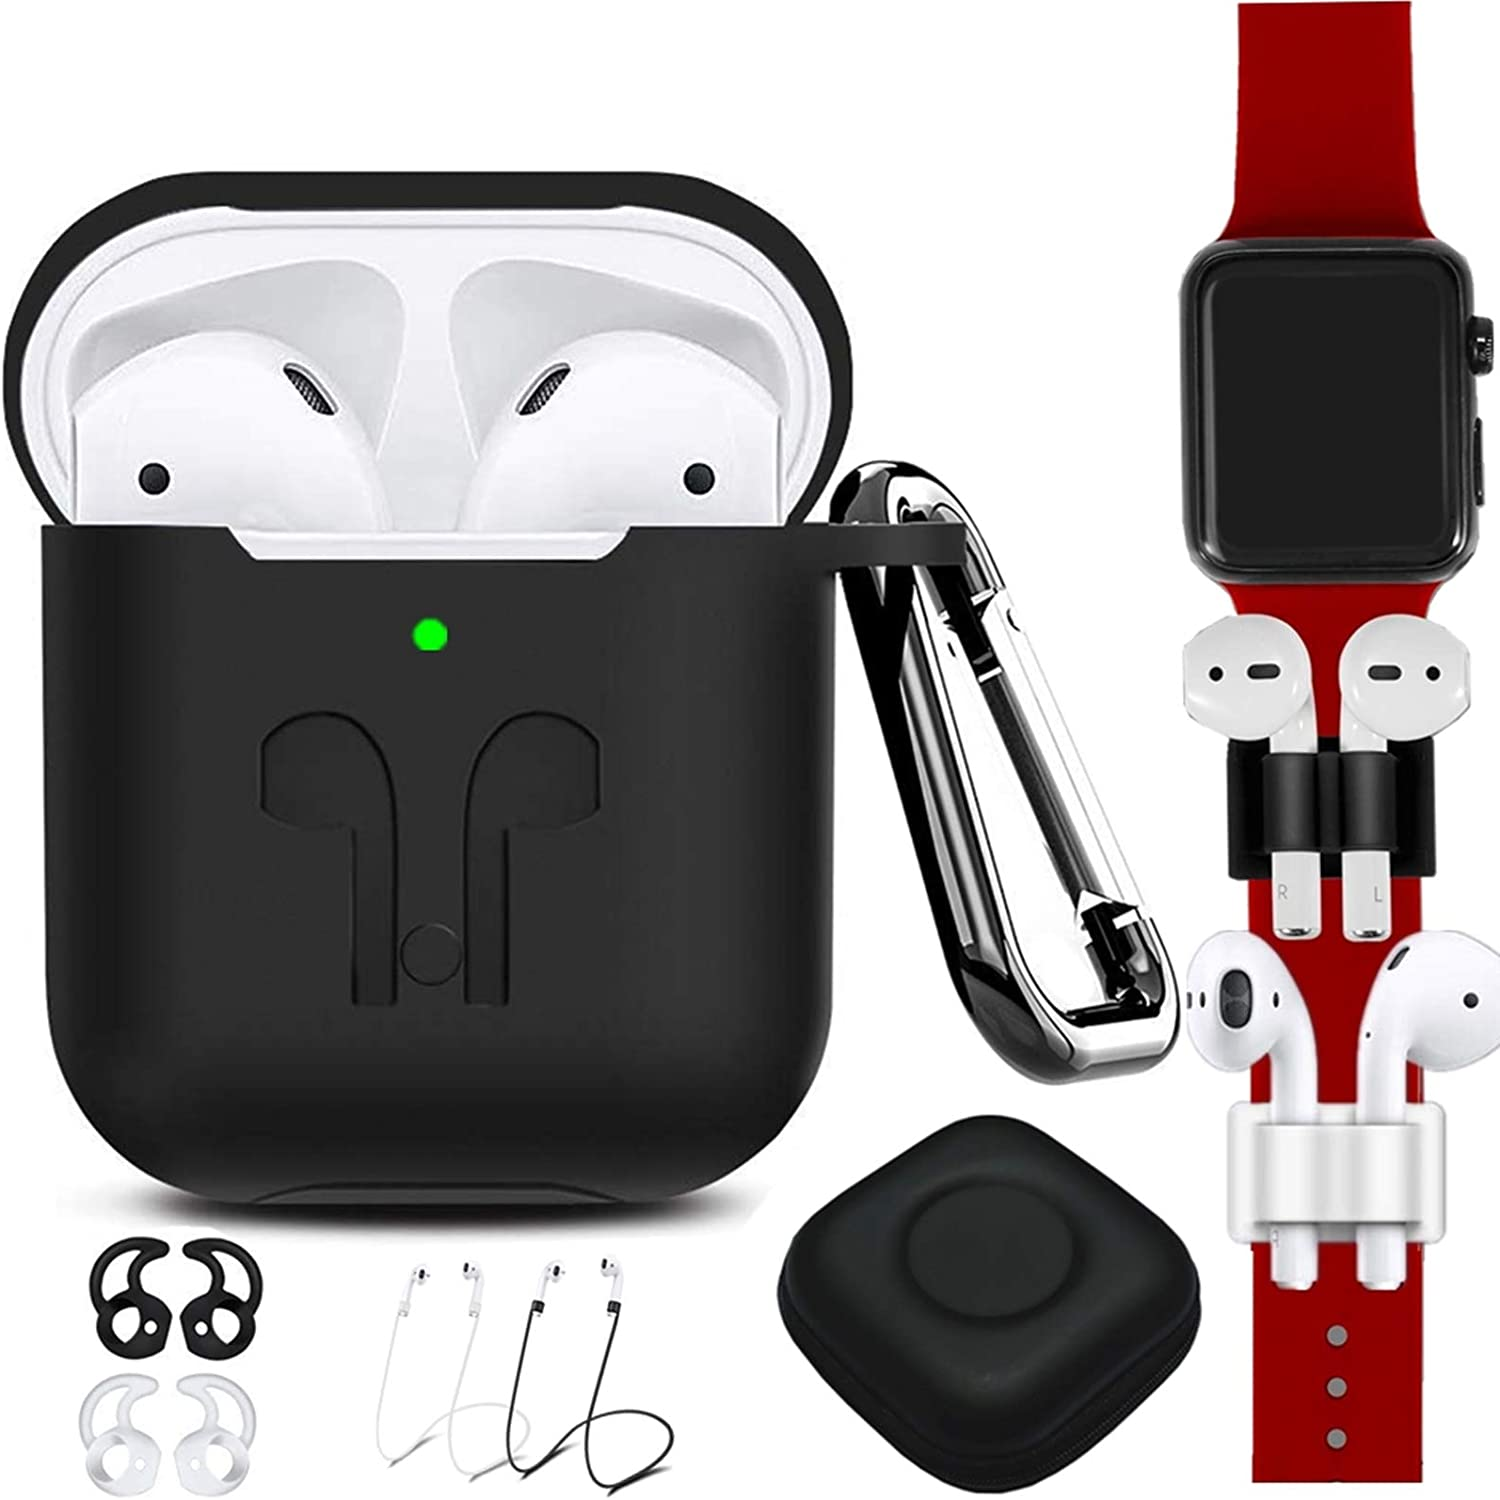 AirPods Case Cover Compatible Apple Airpods 2 & 1[Front LED Visible],9 in 1 Kits Airpods Accessories Set Protective Silicone Skin with Earpods Watch Band Holder/Ear Hook/Stap/Clip/Keychain/Grip-Black